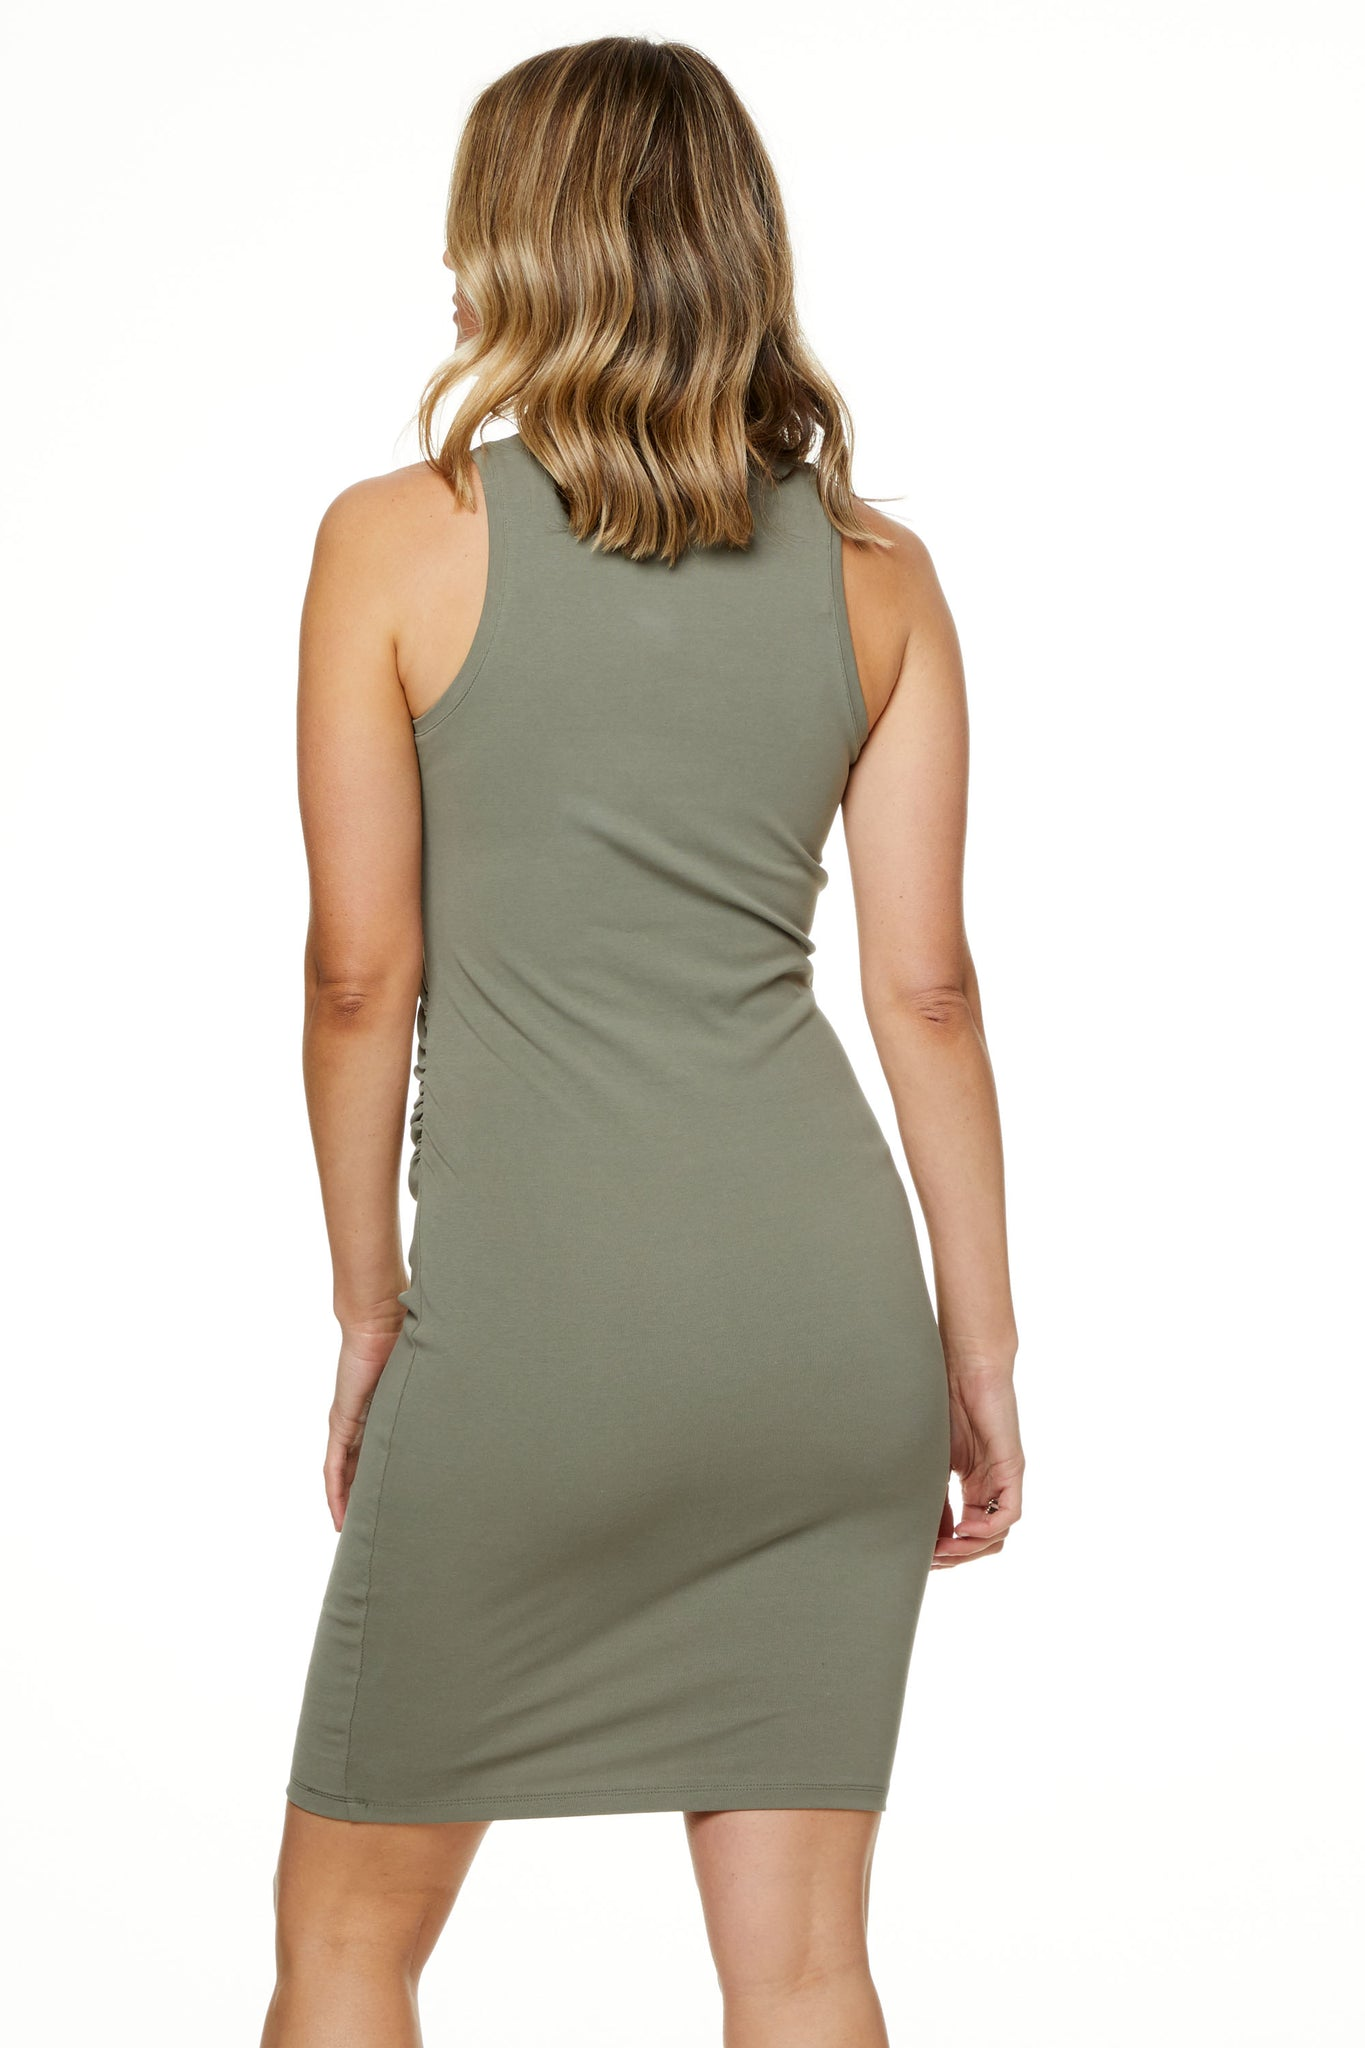 Bodycon Maternity Dress Khaki Image 3